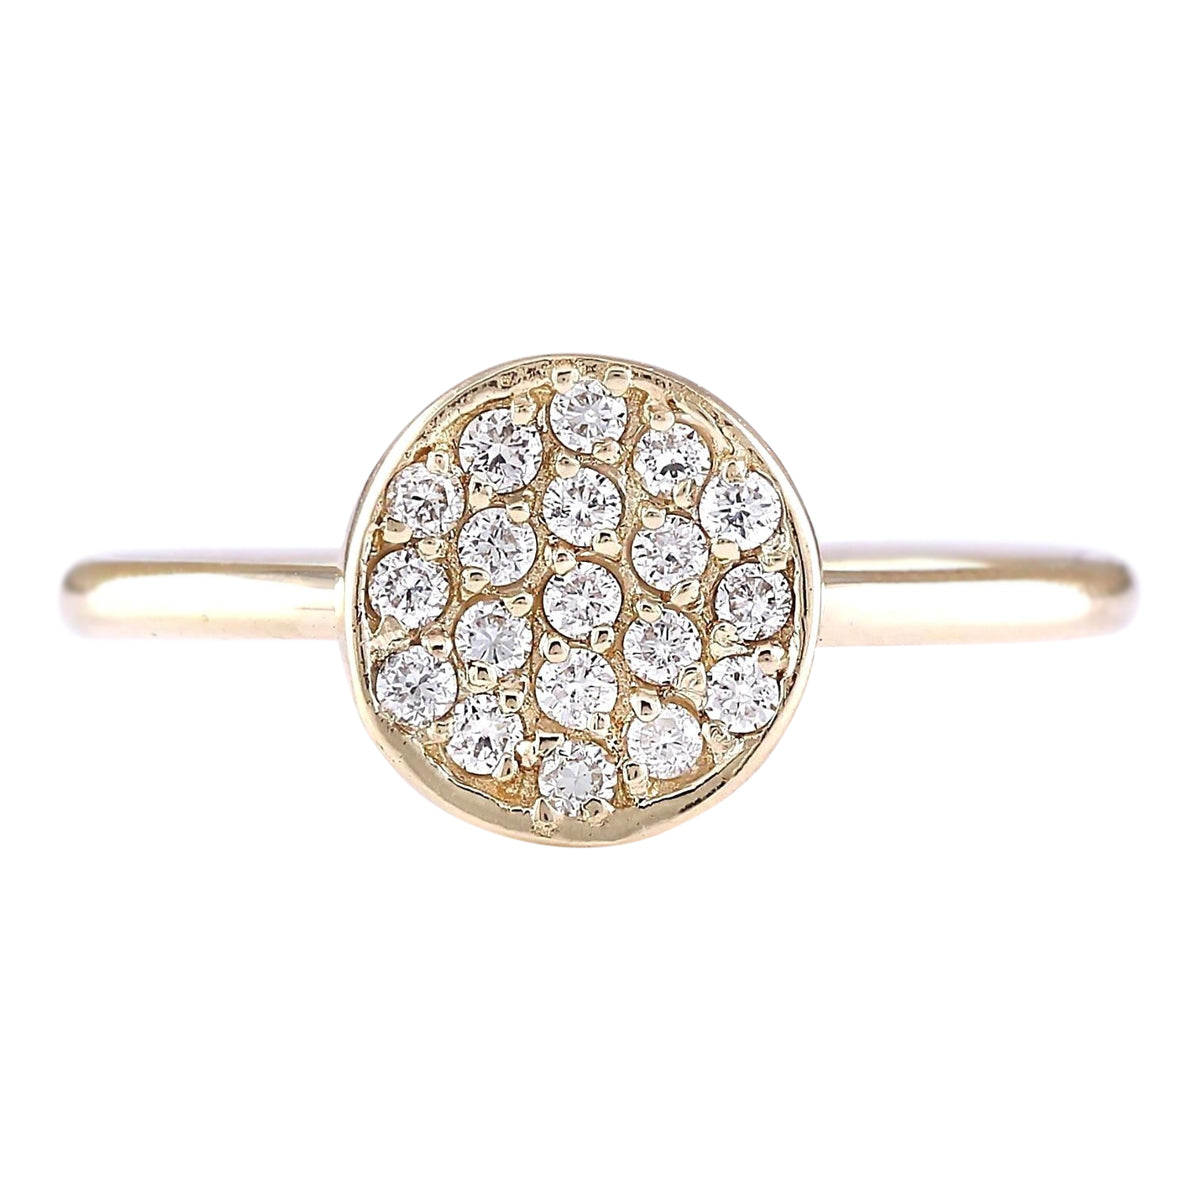 0.16 Carat Natural Diamond 14K Yellow Gold Ring